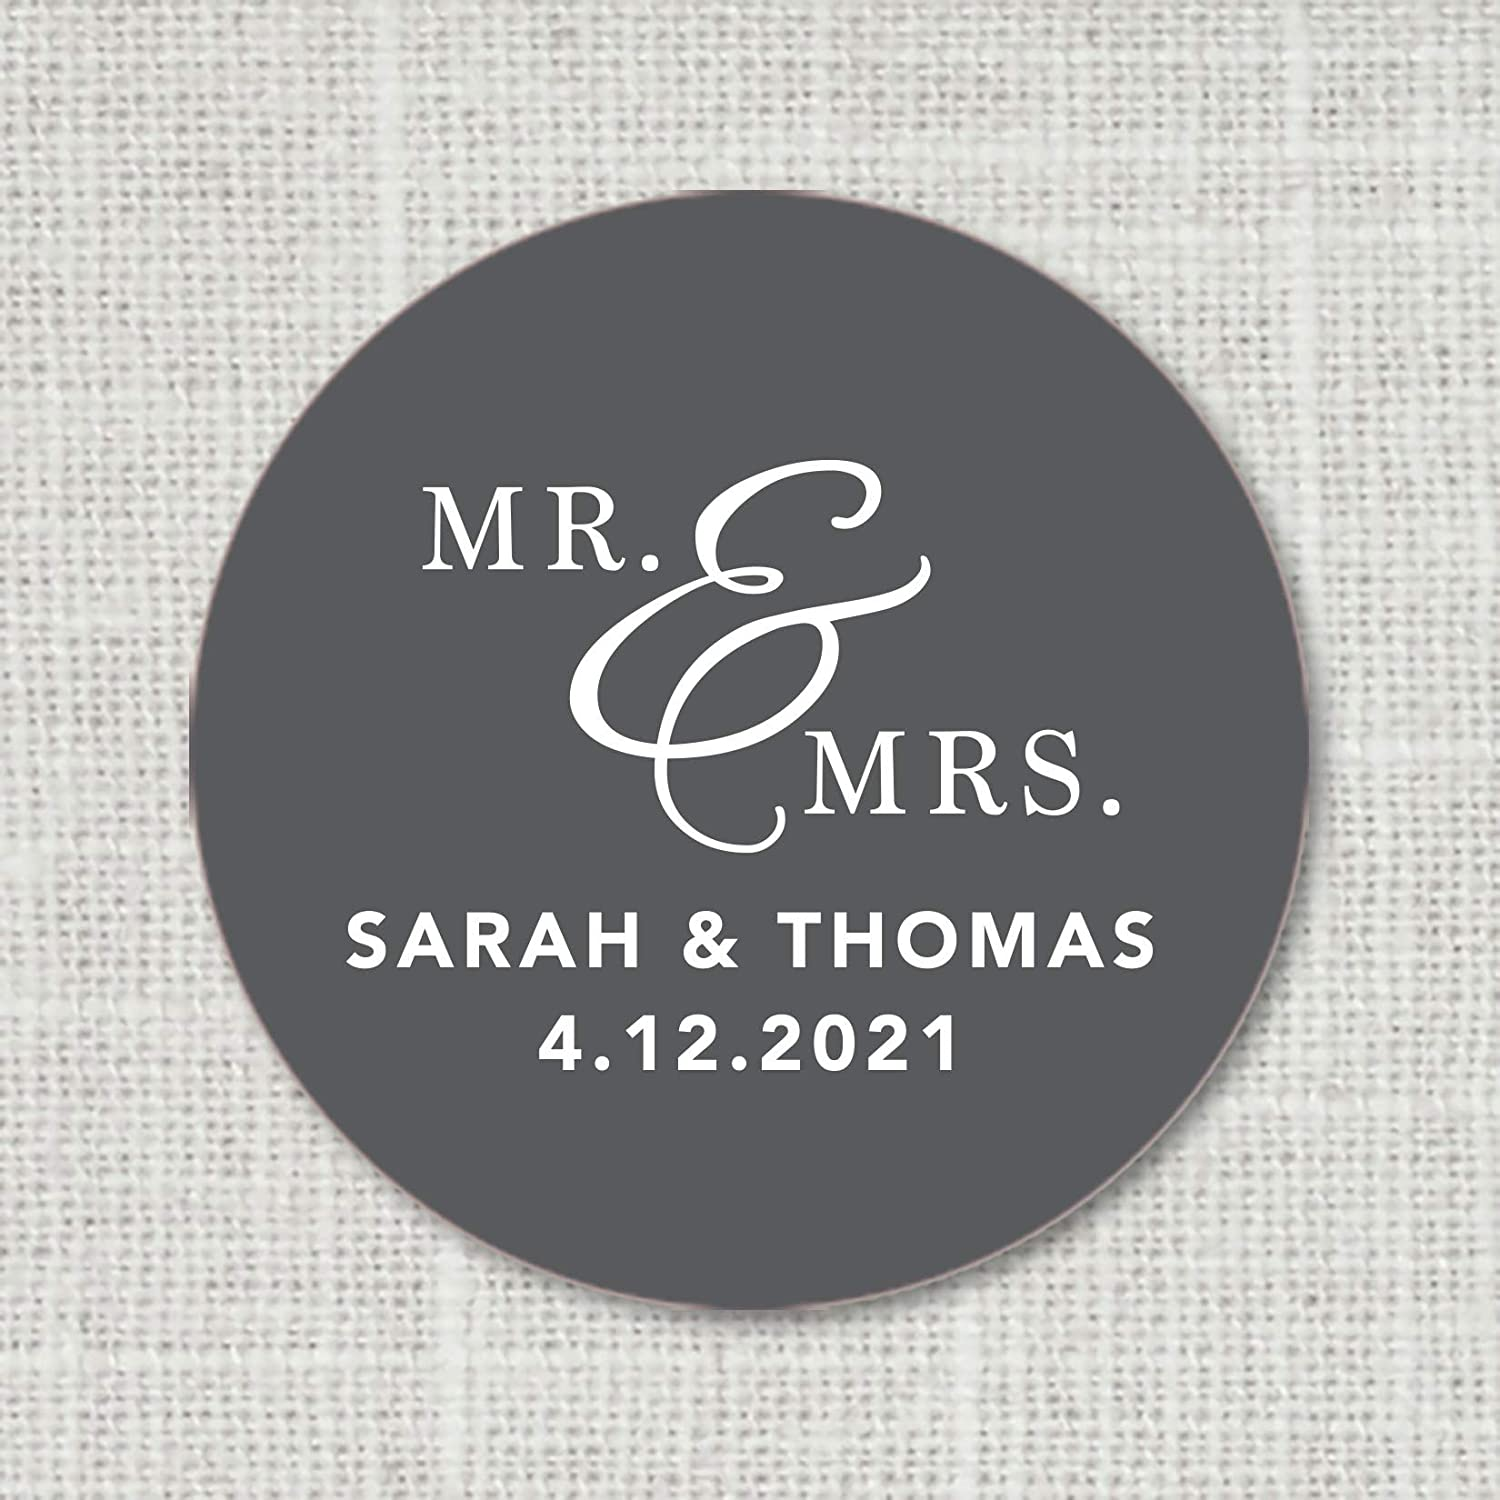 Wedding favor stickers Wedding stickers Wedding Envelope Seals Invitation Stickers Favor Labels F22:6 Mr And Mrs Stickers